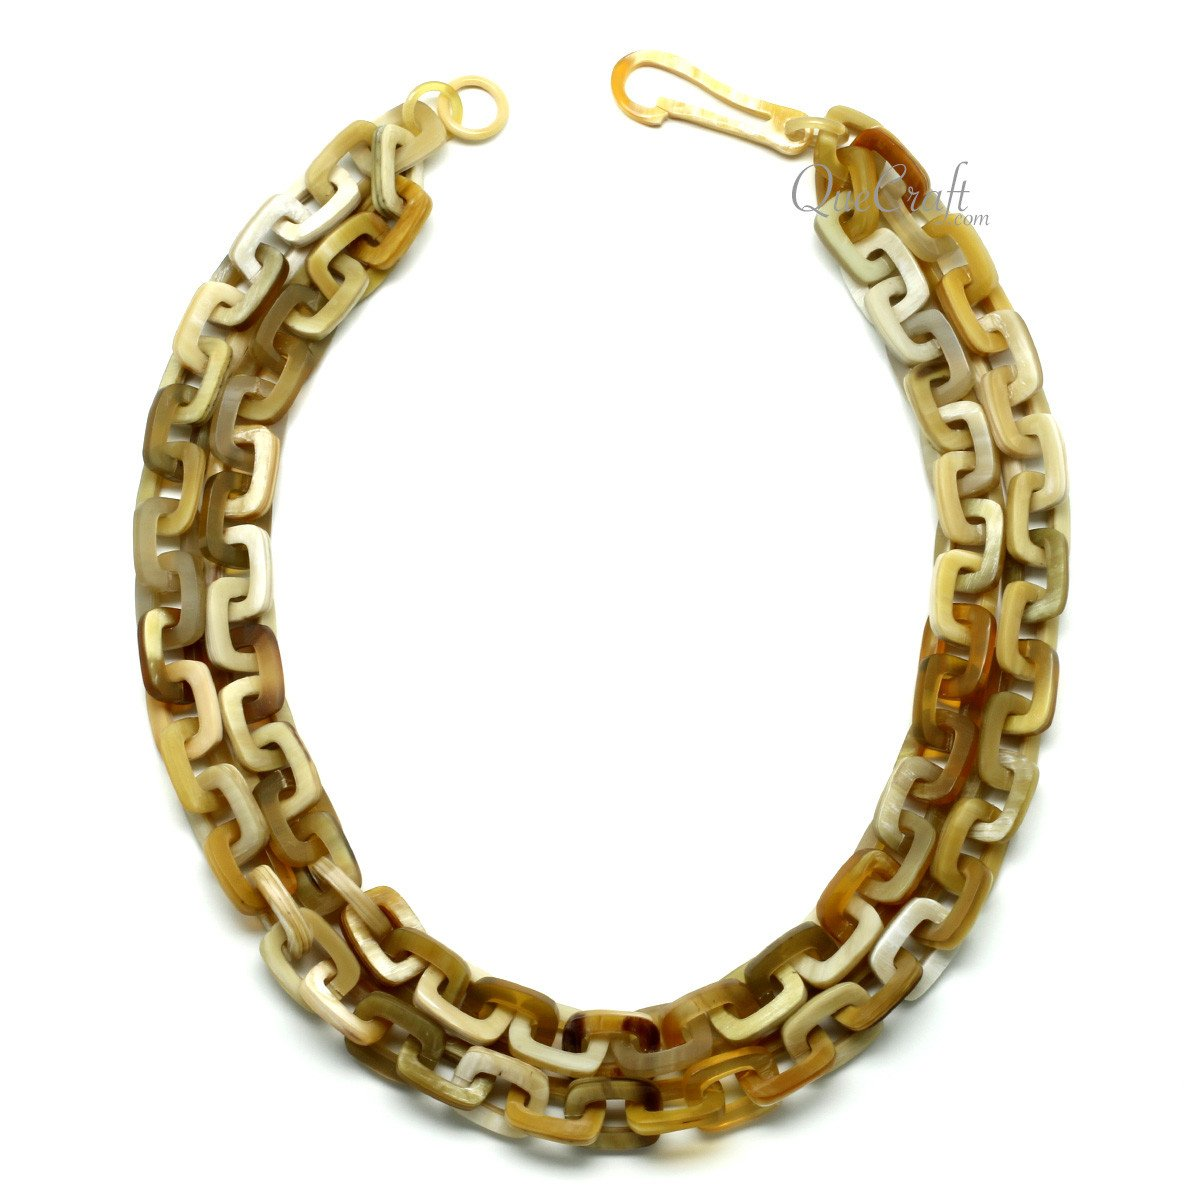 Horn Chain Necklace #11824 - HORN.JEWELRY